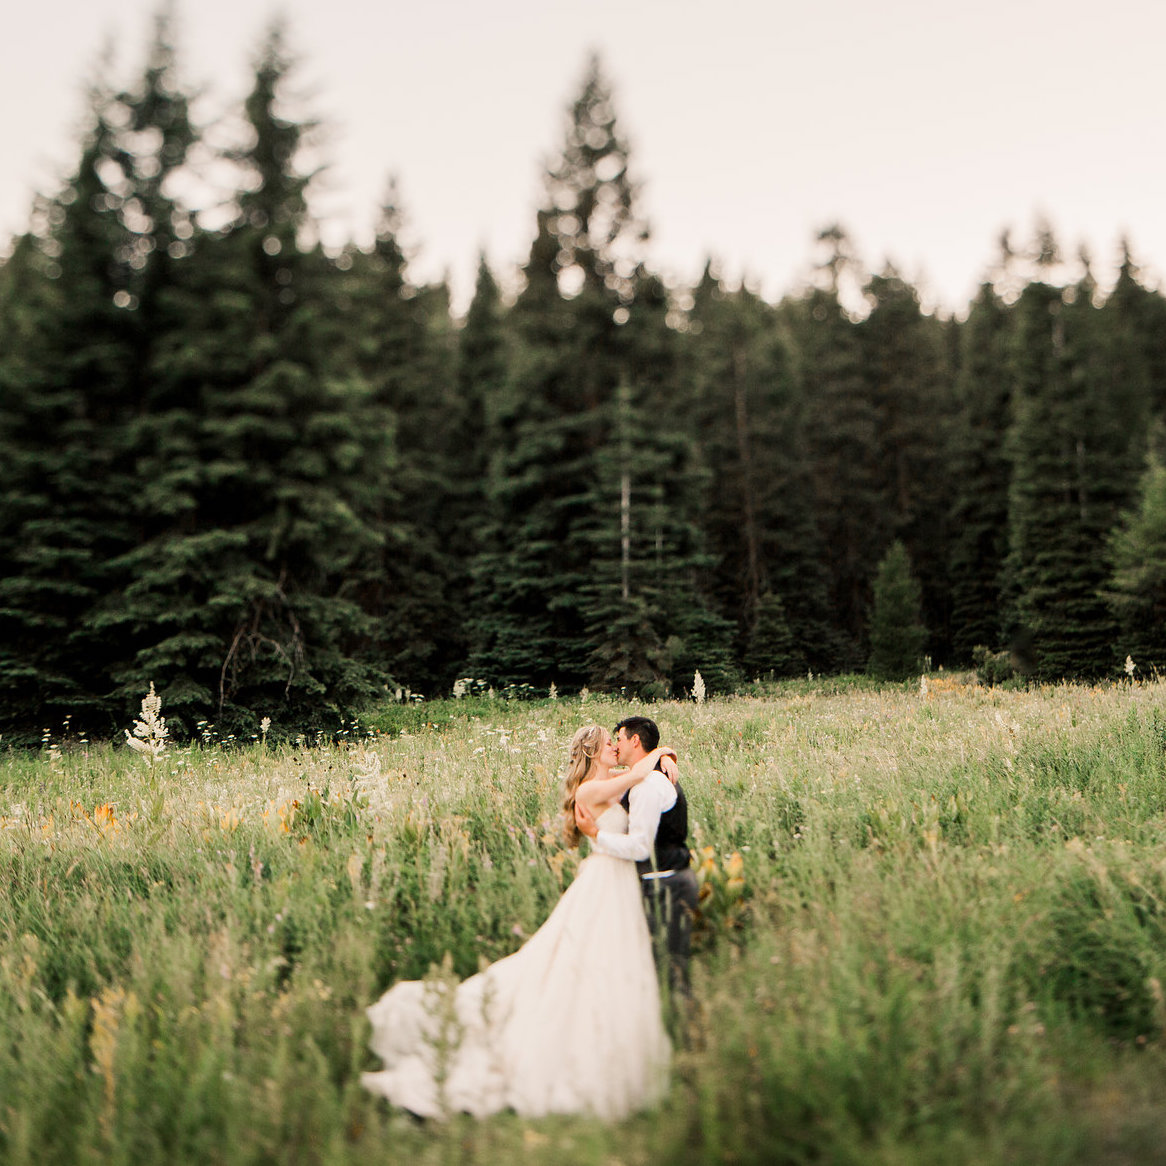 Ira and Lucy Wedding Planner, Tamarack, Jesse Hart Photography